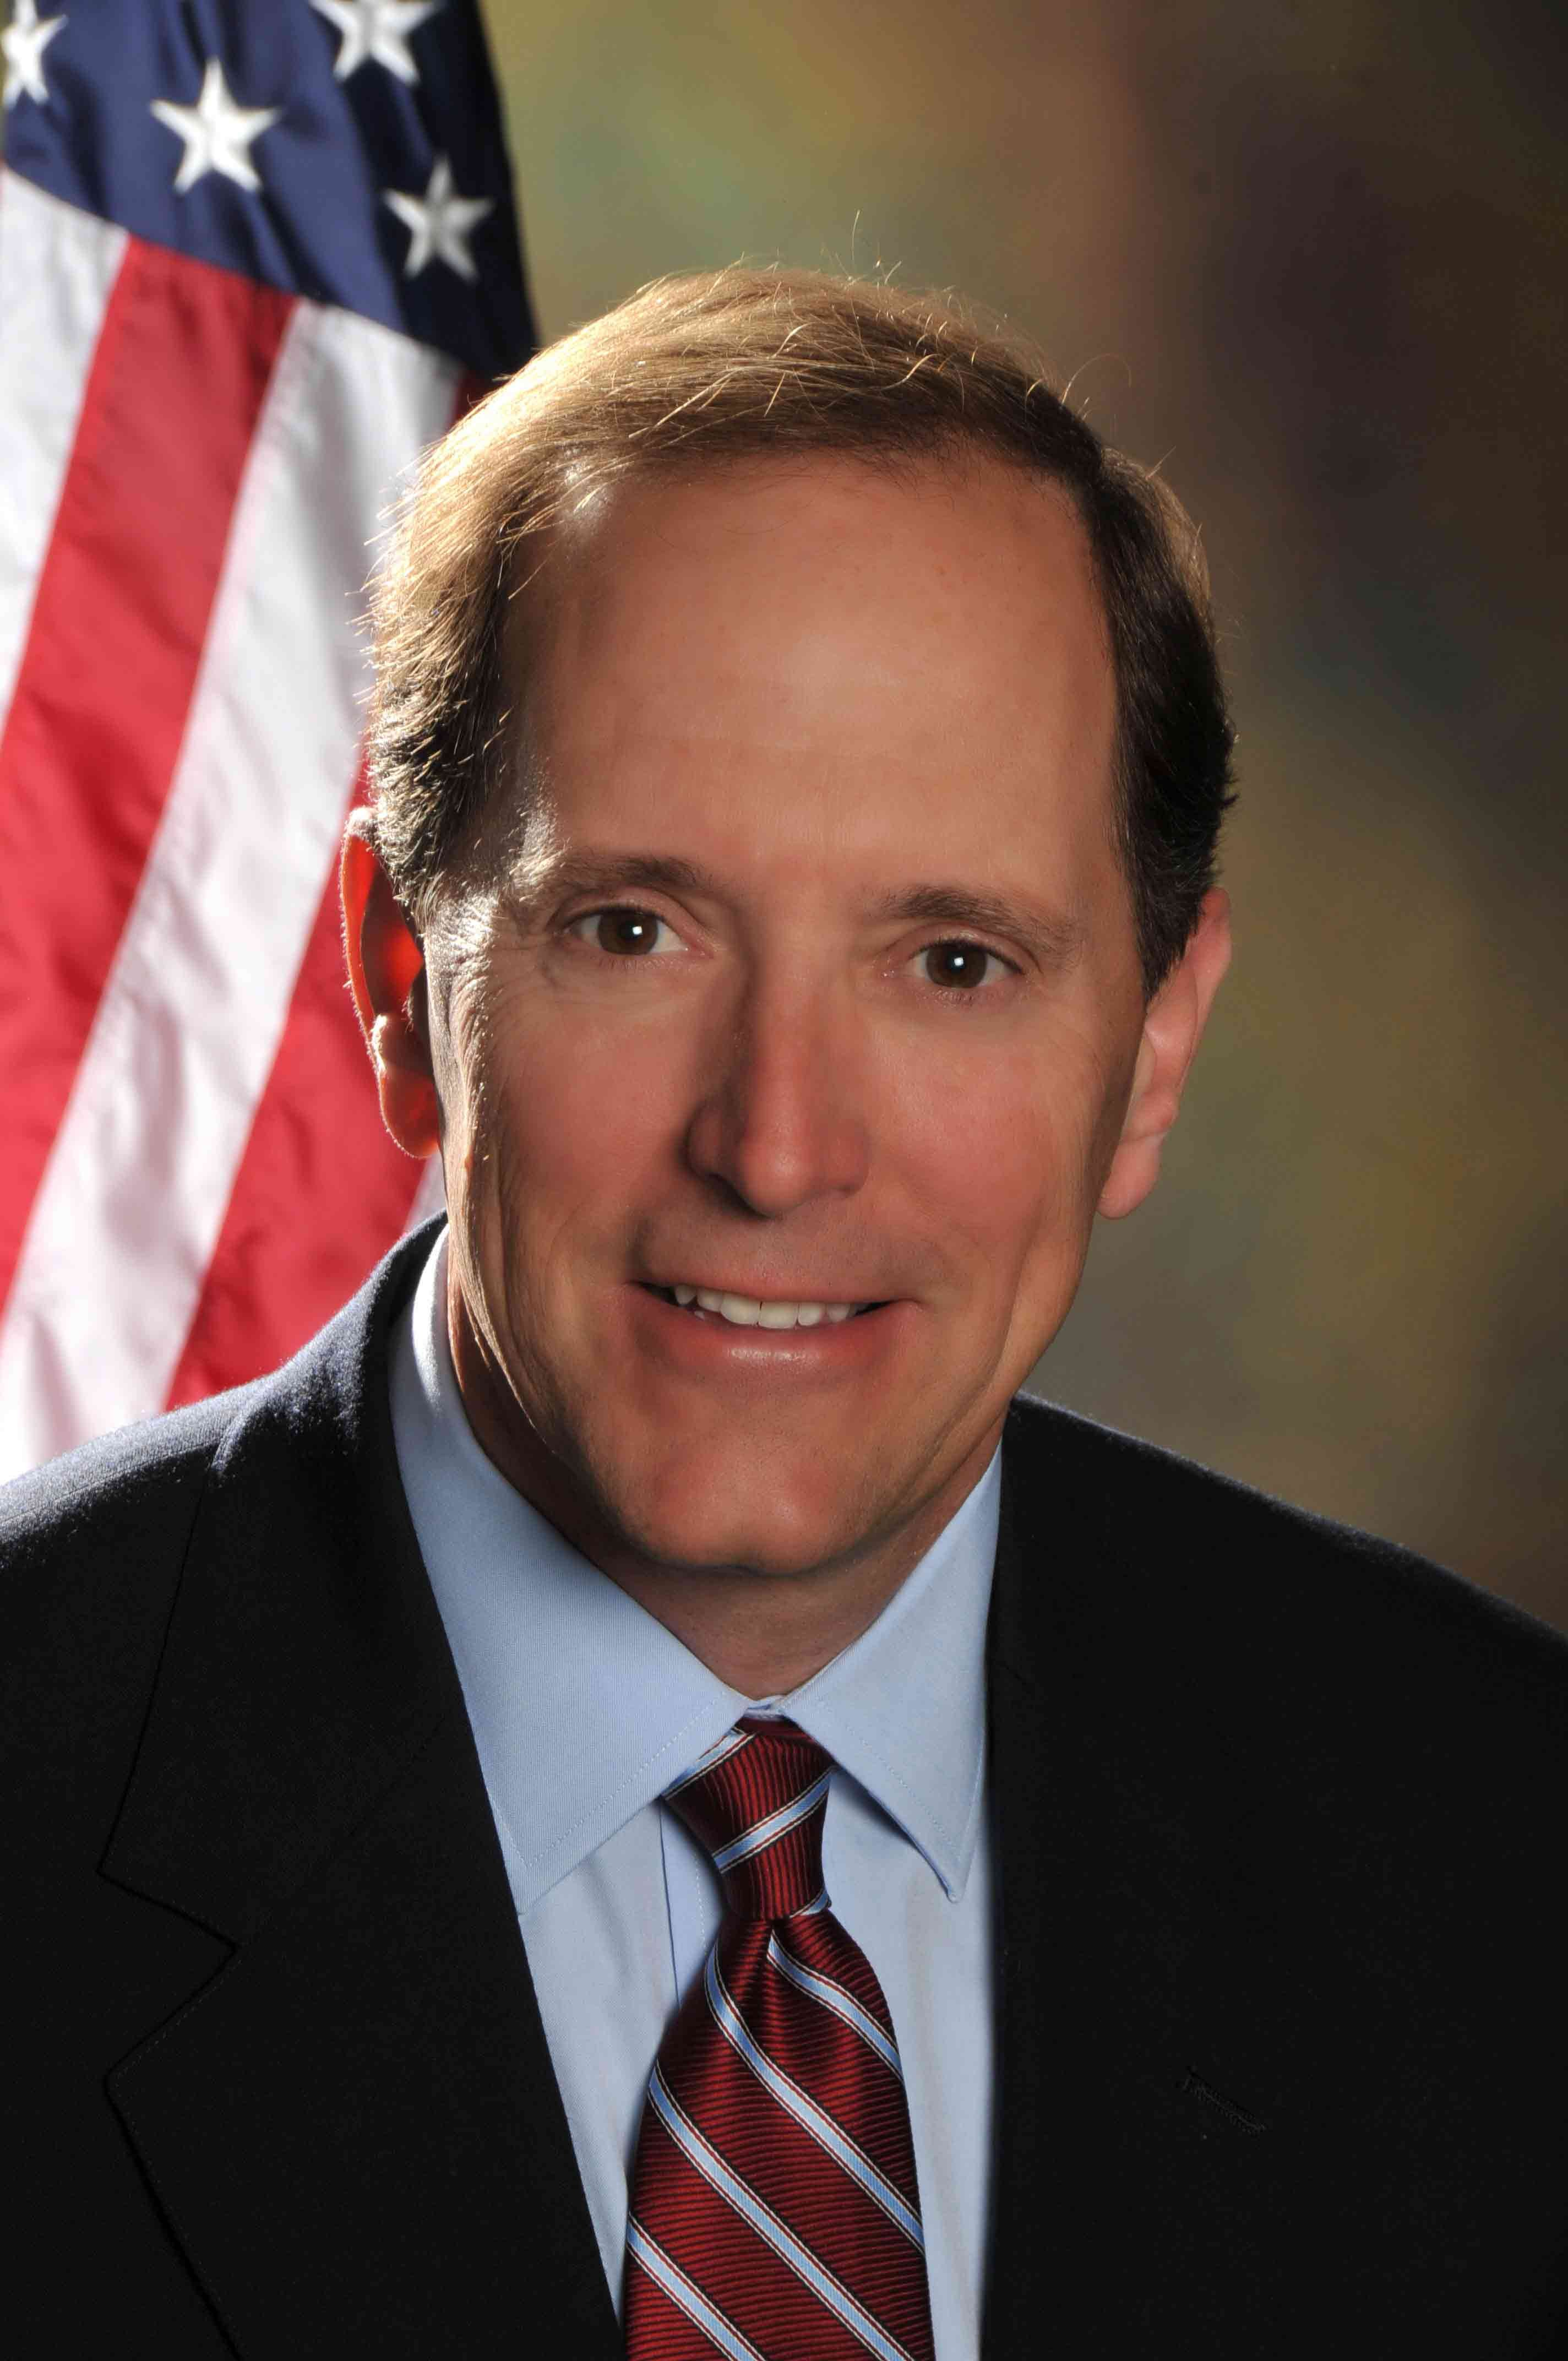 Republican Rep. Dave Camp